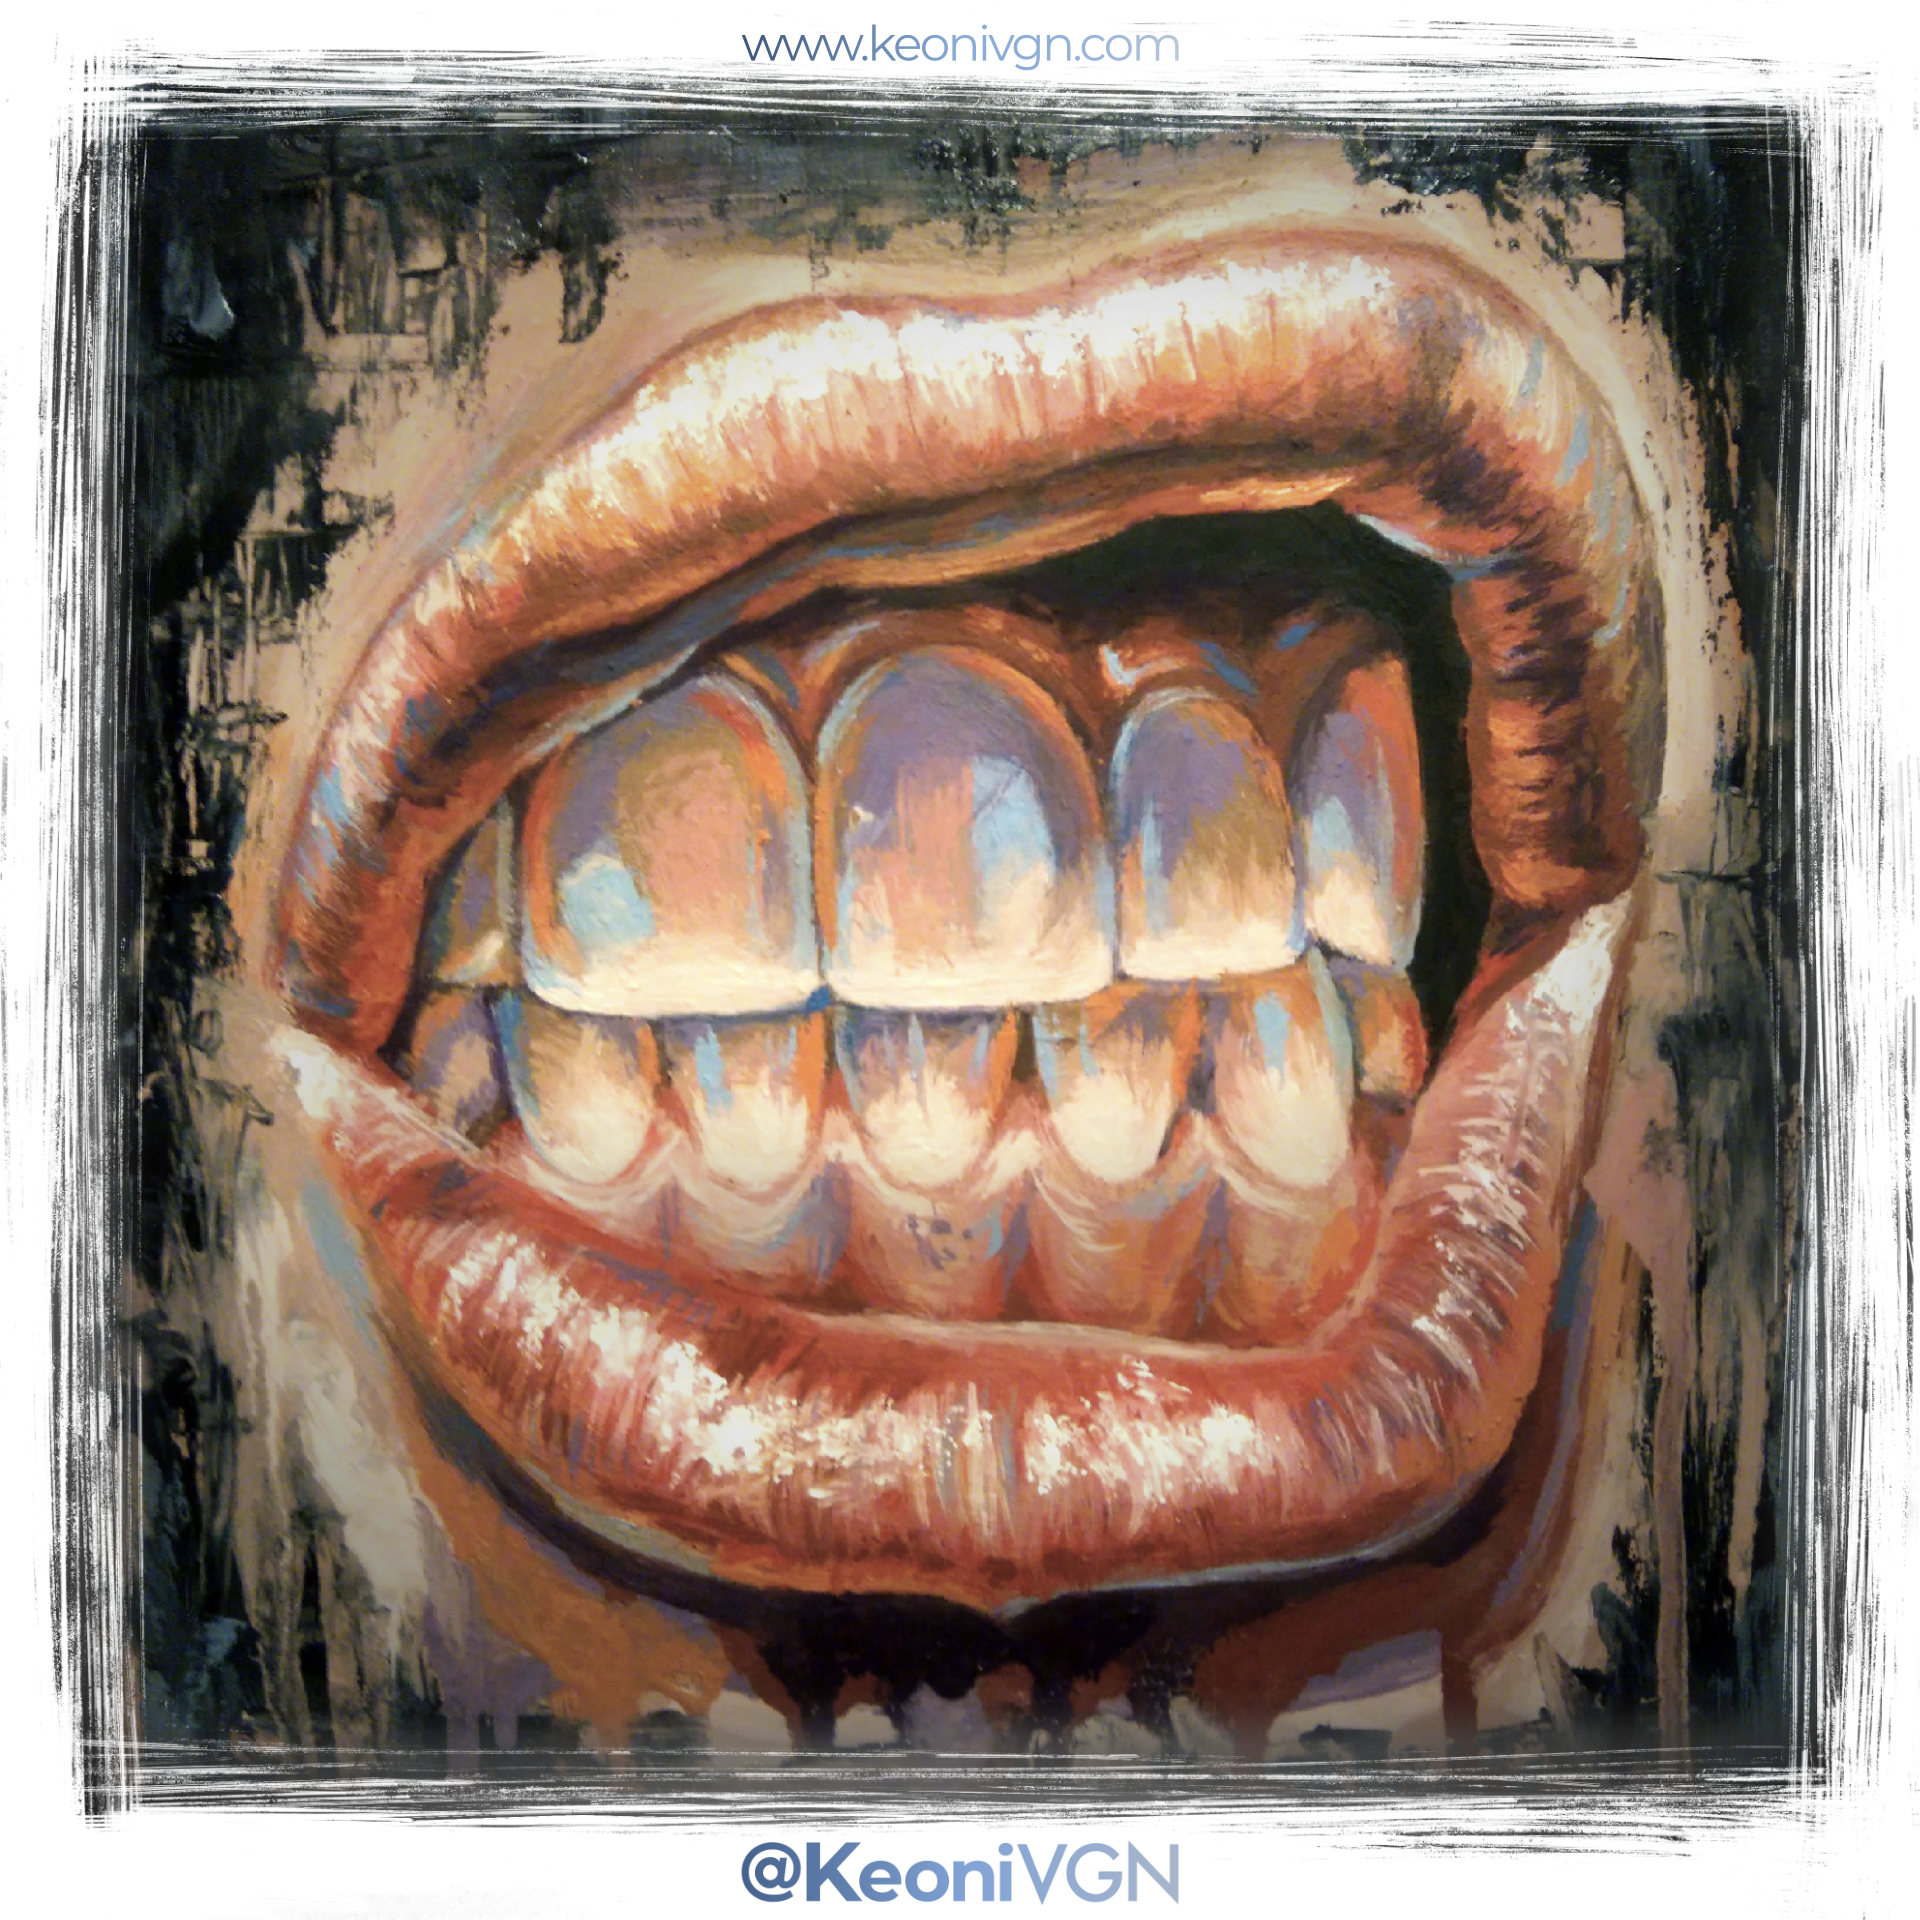 proyecto MOUTH STUDY